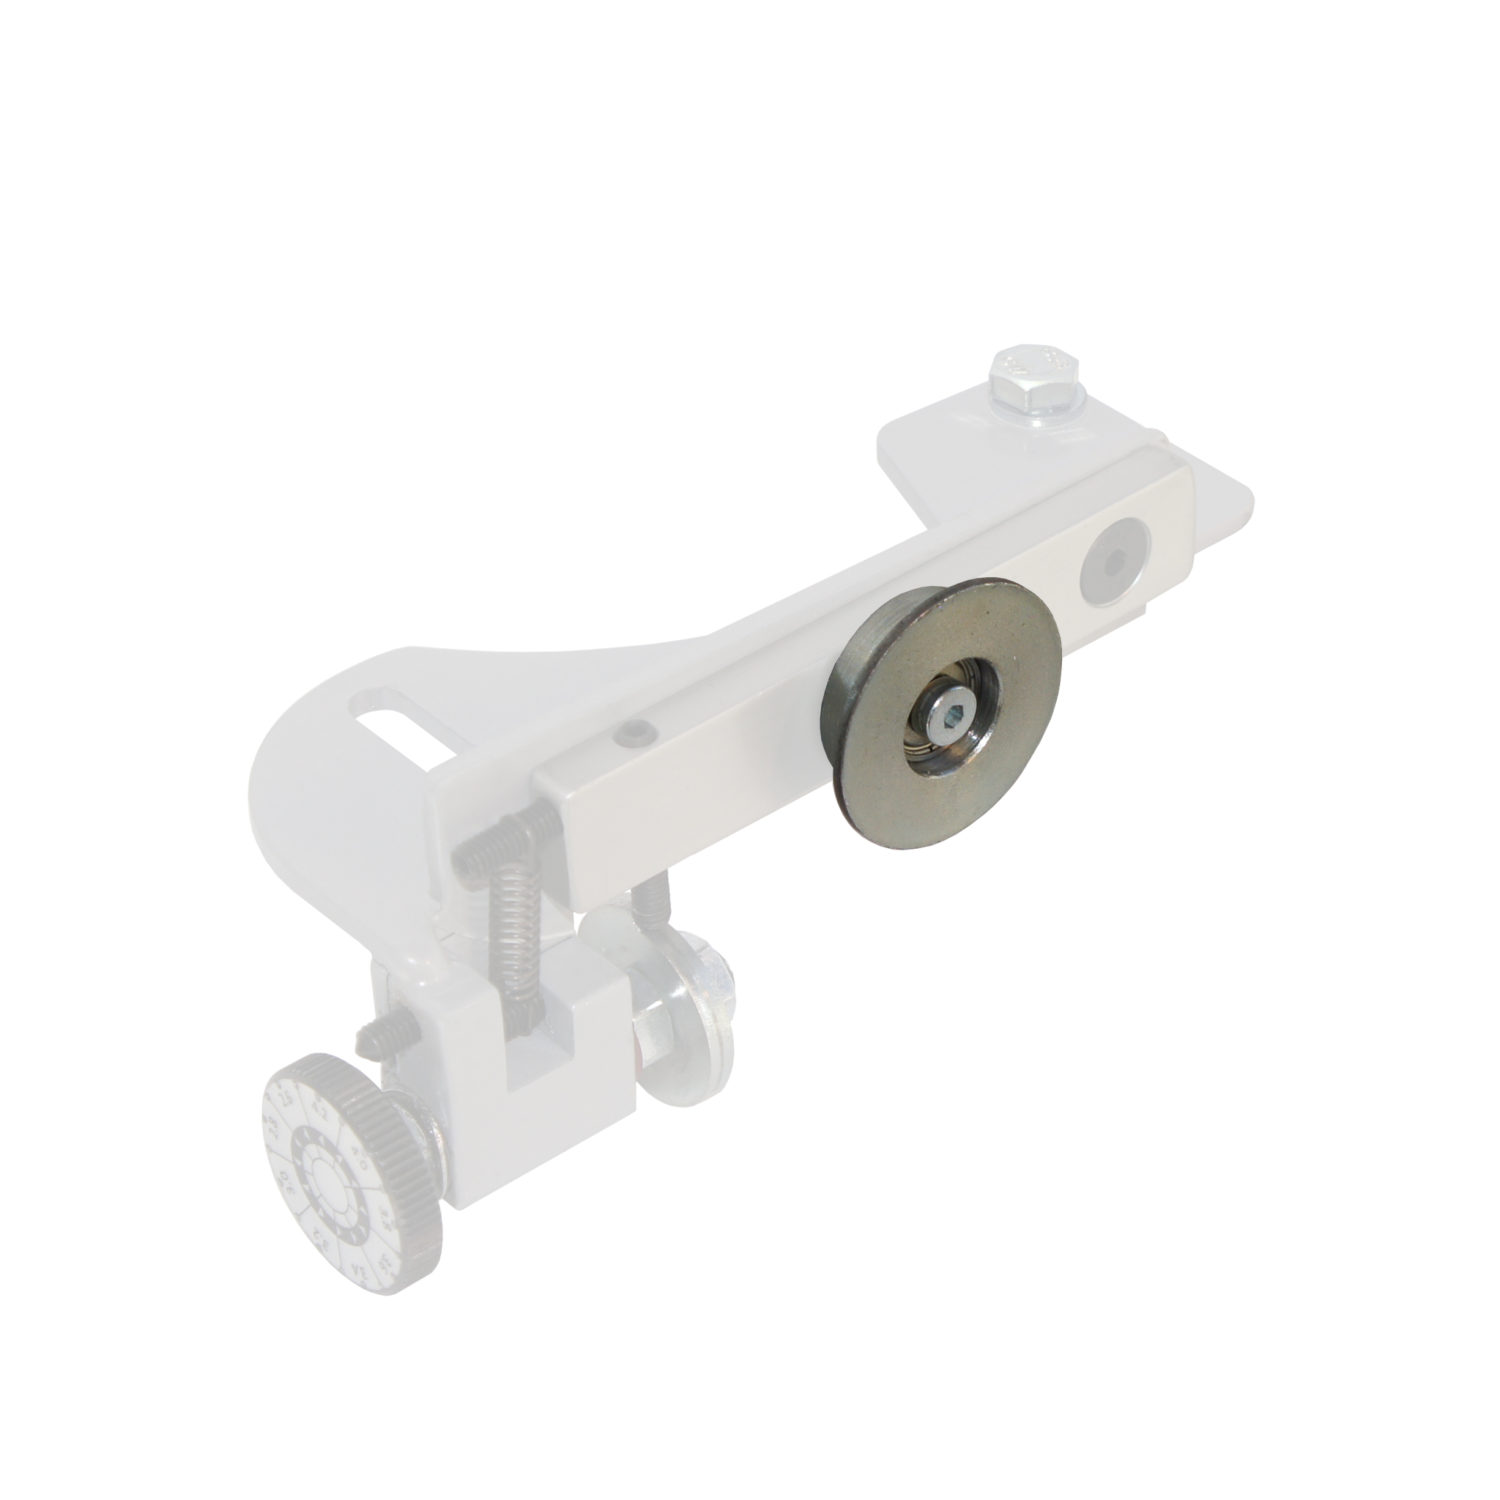 Roller for blade support device